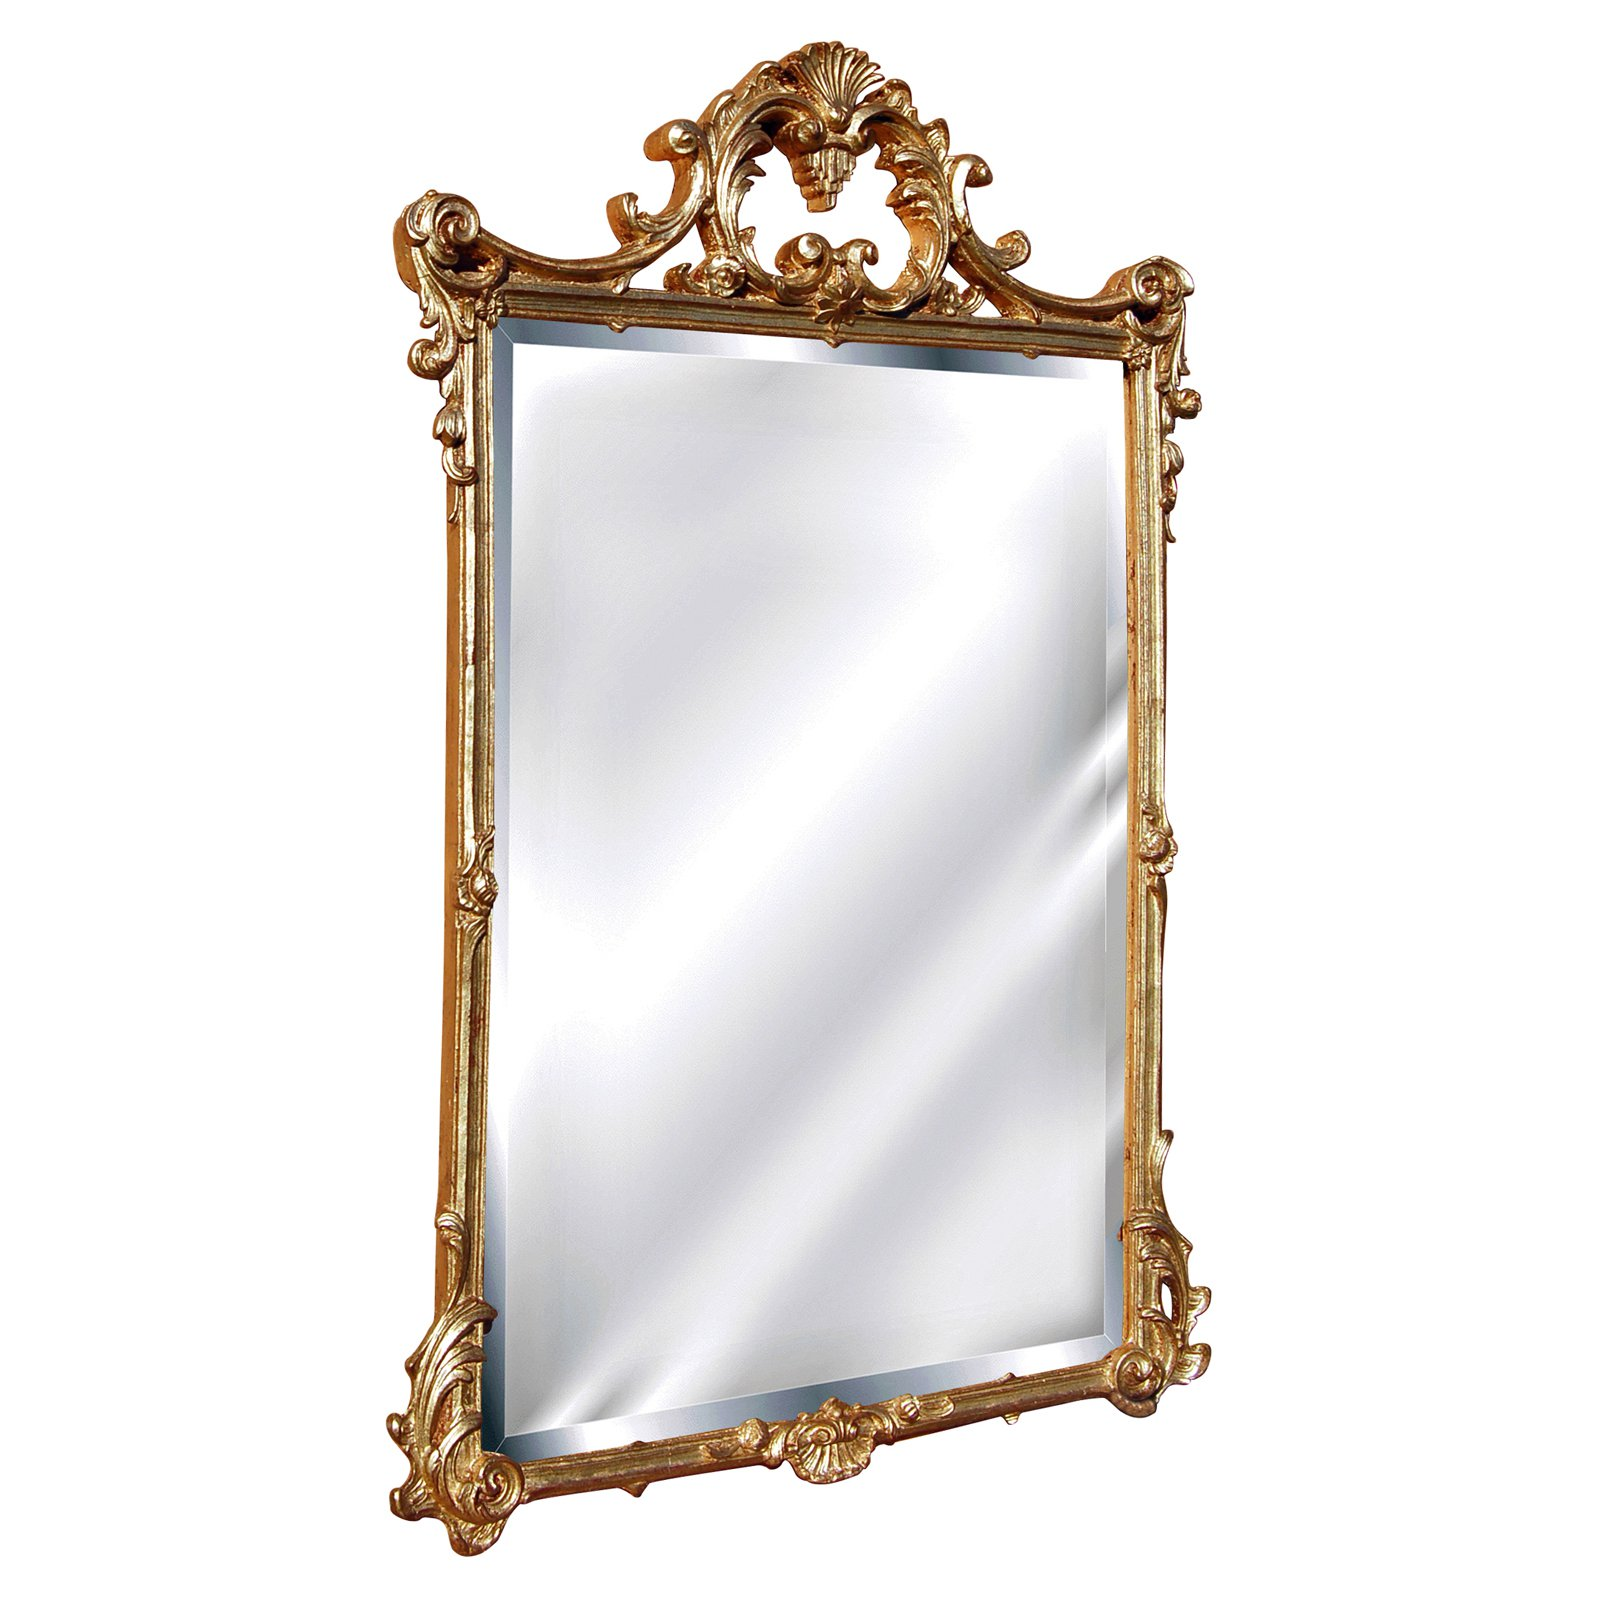 Hickory Manor House English Arch Wall Mirror - 26W x 39H in.